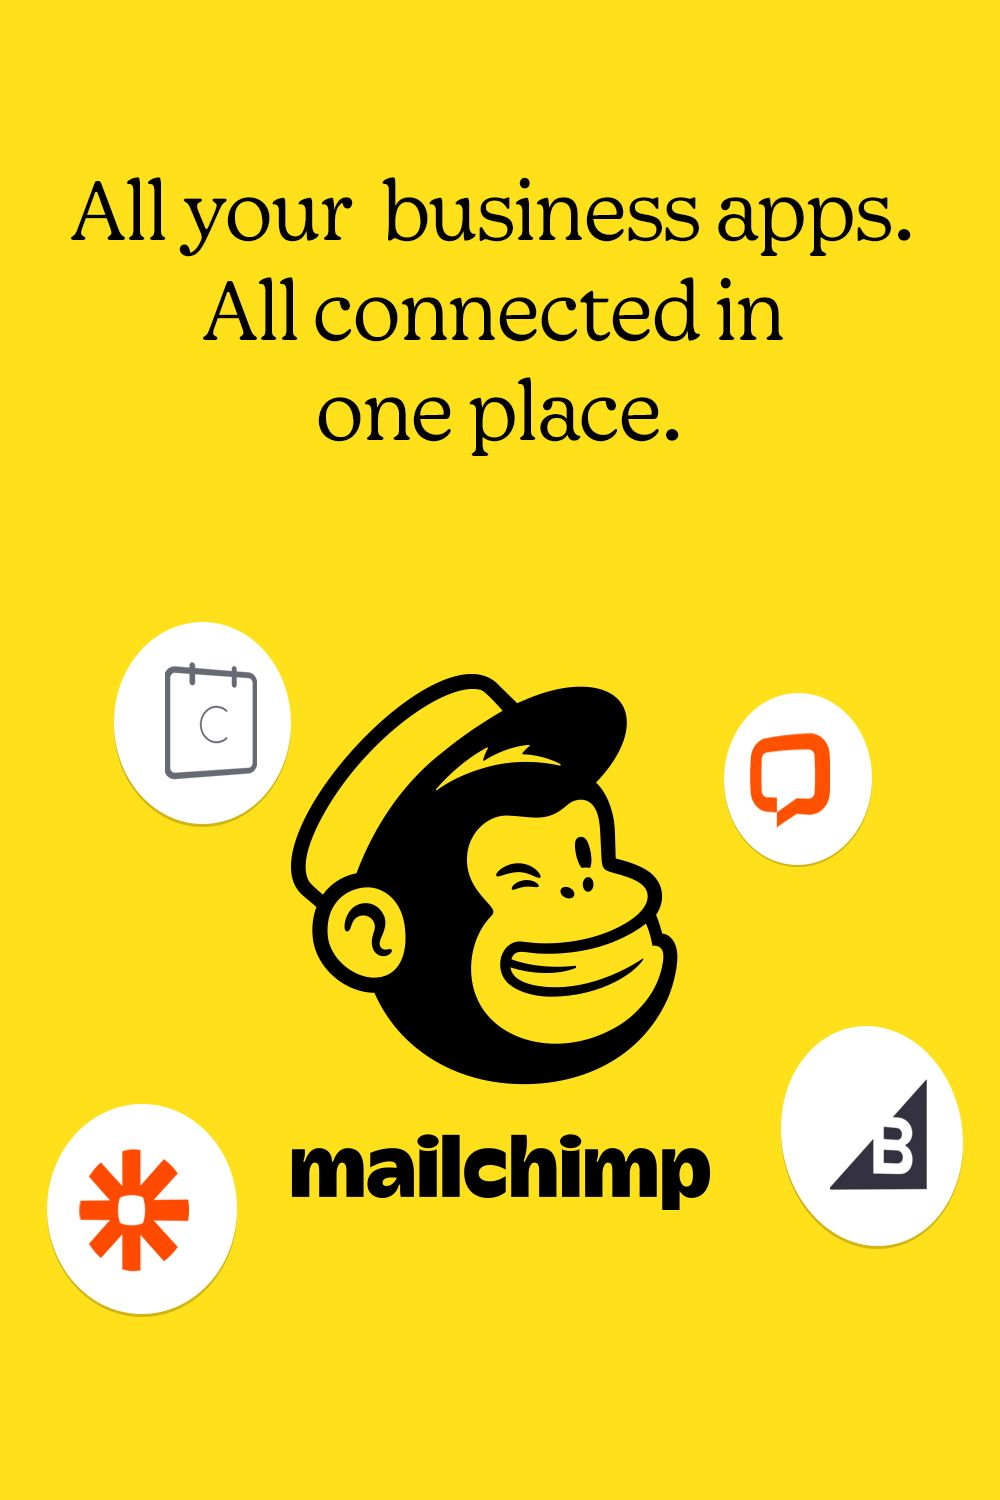 Connect all your apps